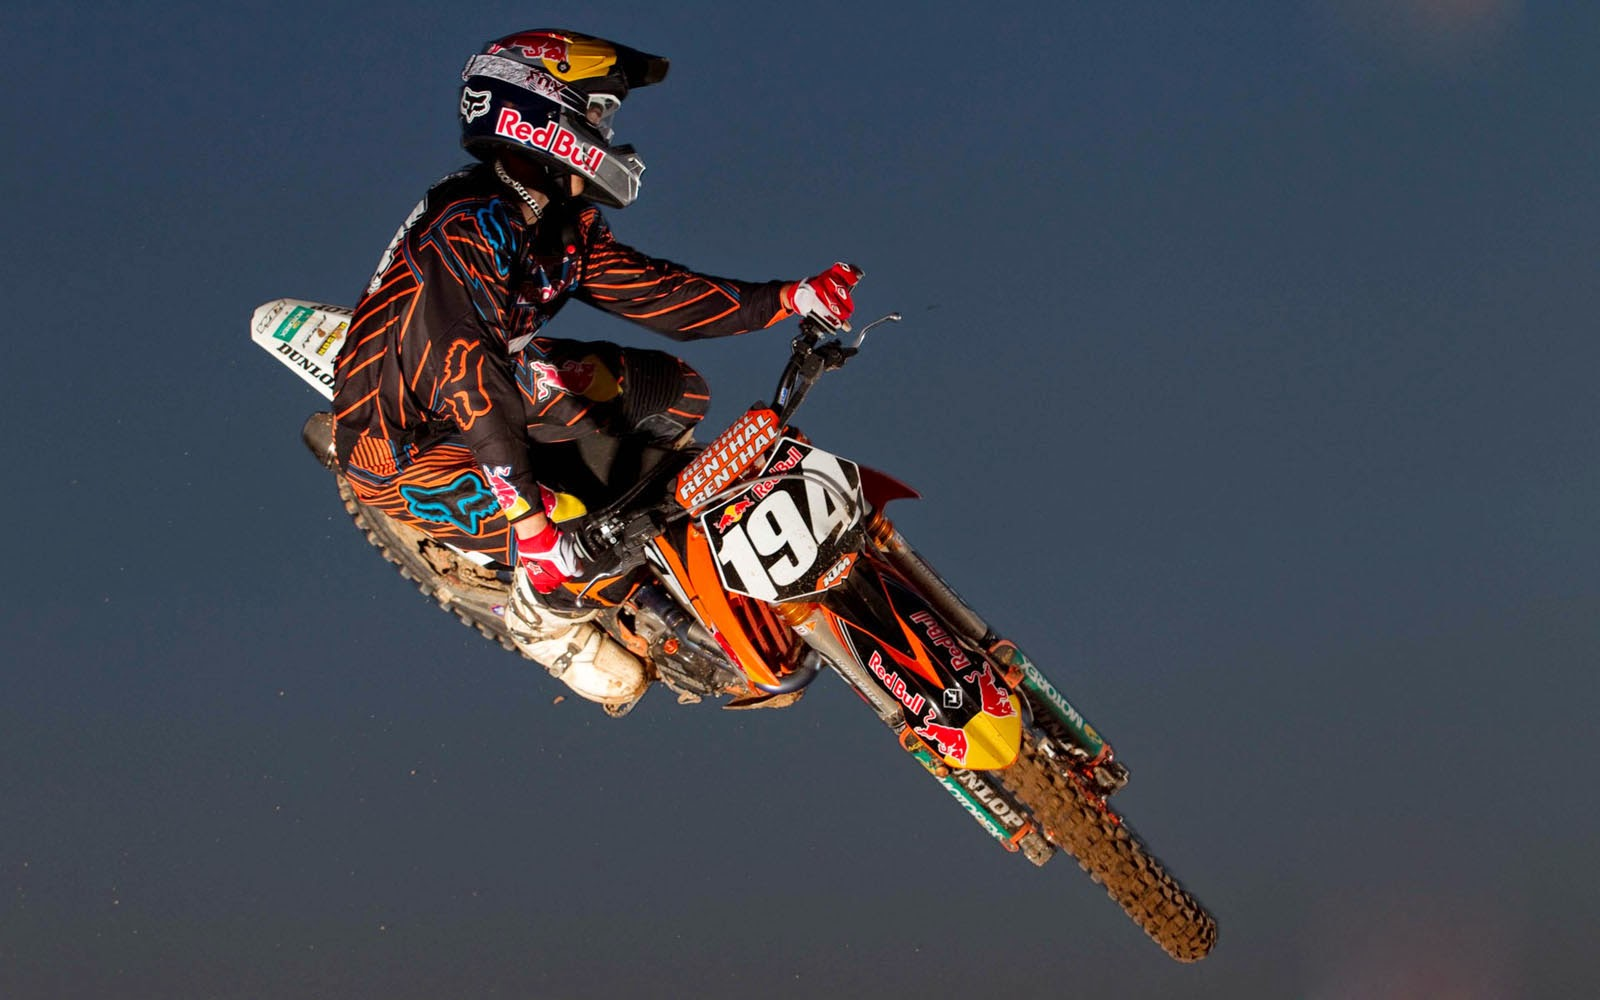 wallpapers KTM 350 SX F Wallpapers 1600x1000